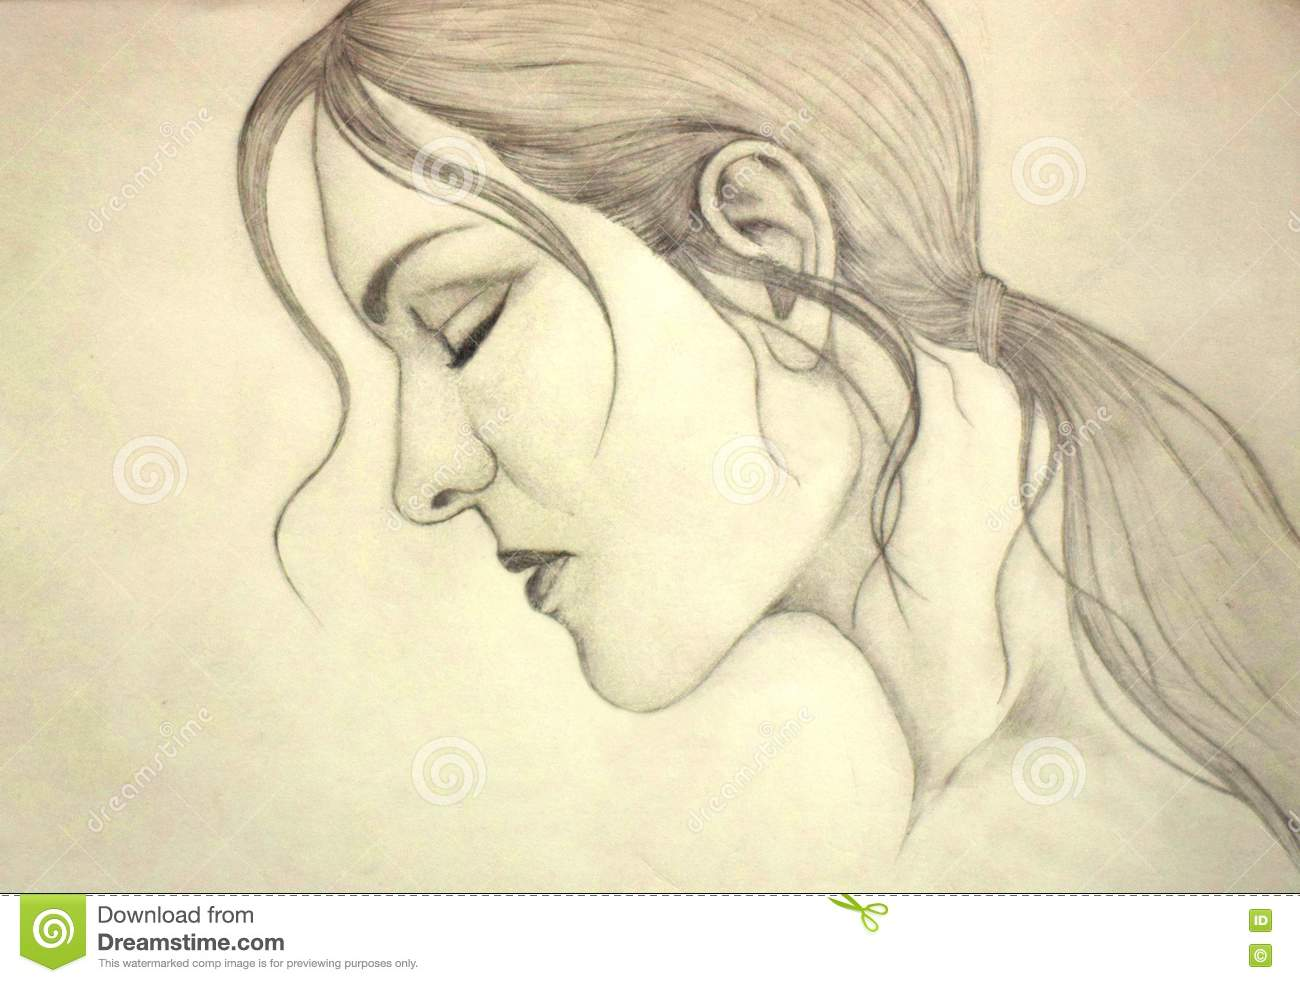 Pencil drawing of a face of a cute lady with shading i am the author of this one and his is imaginary